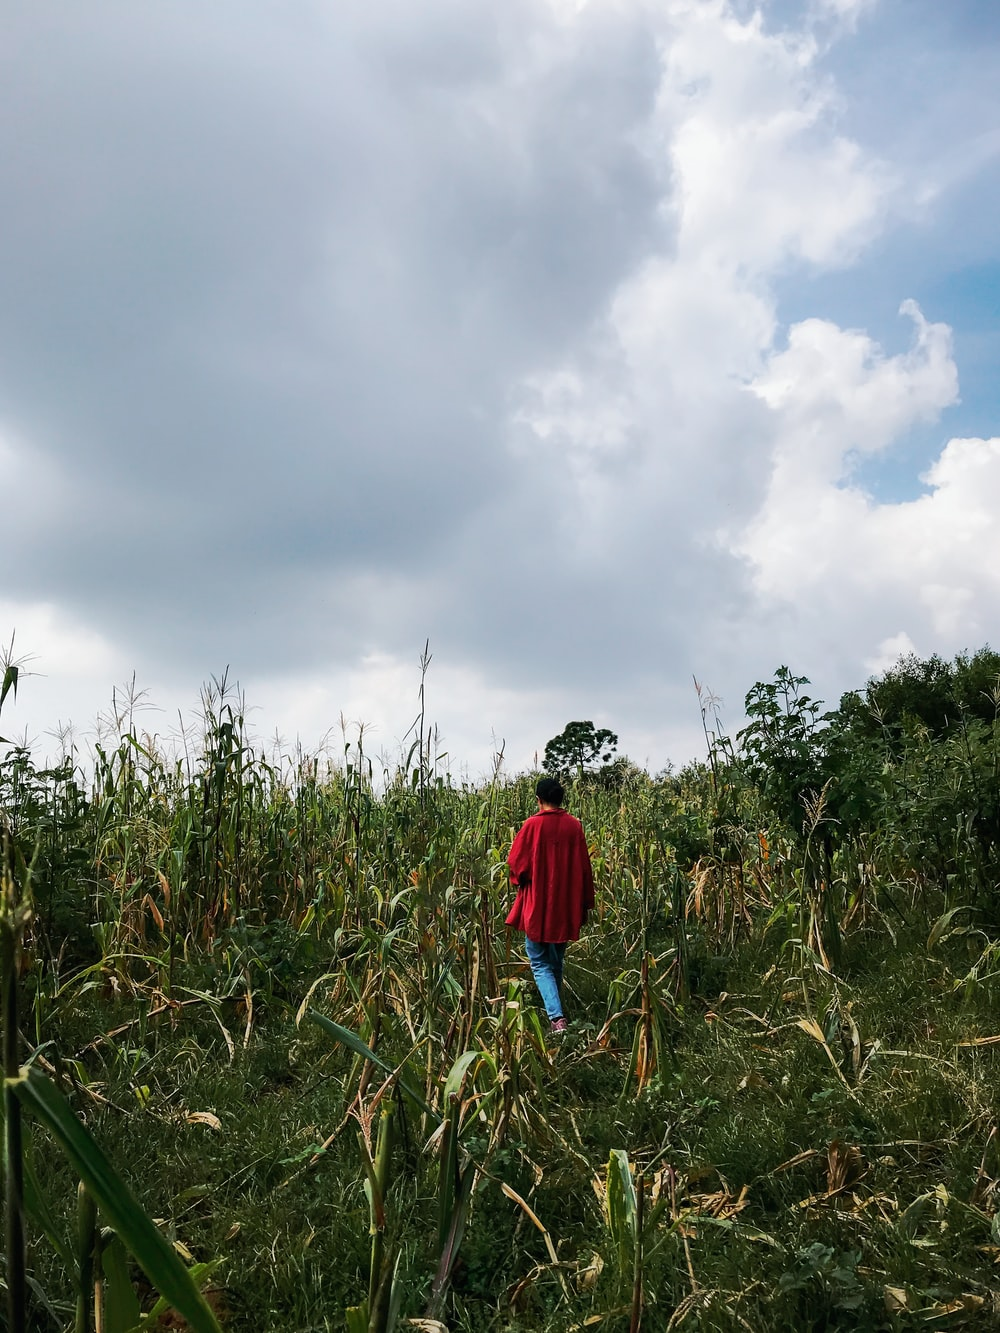 person in red jacket walking on green grass field under white clouds during daytime